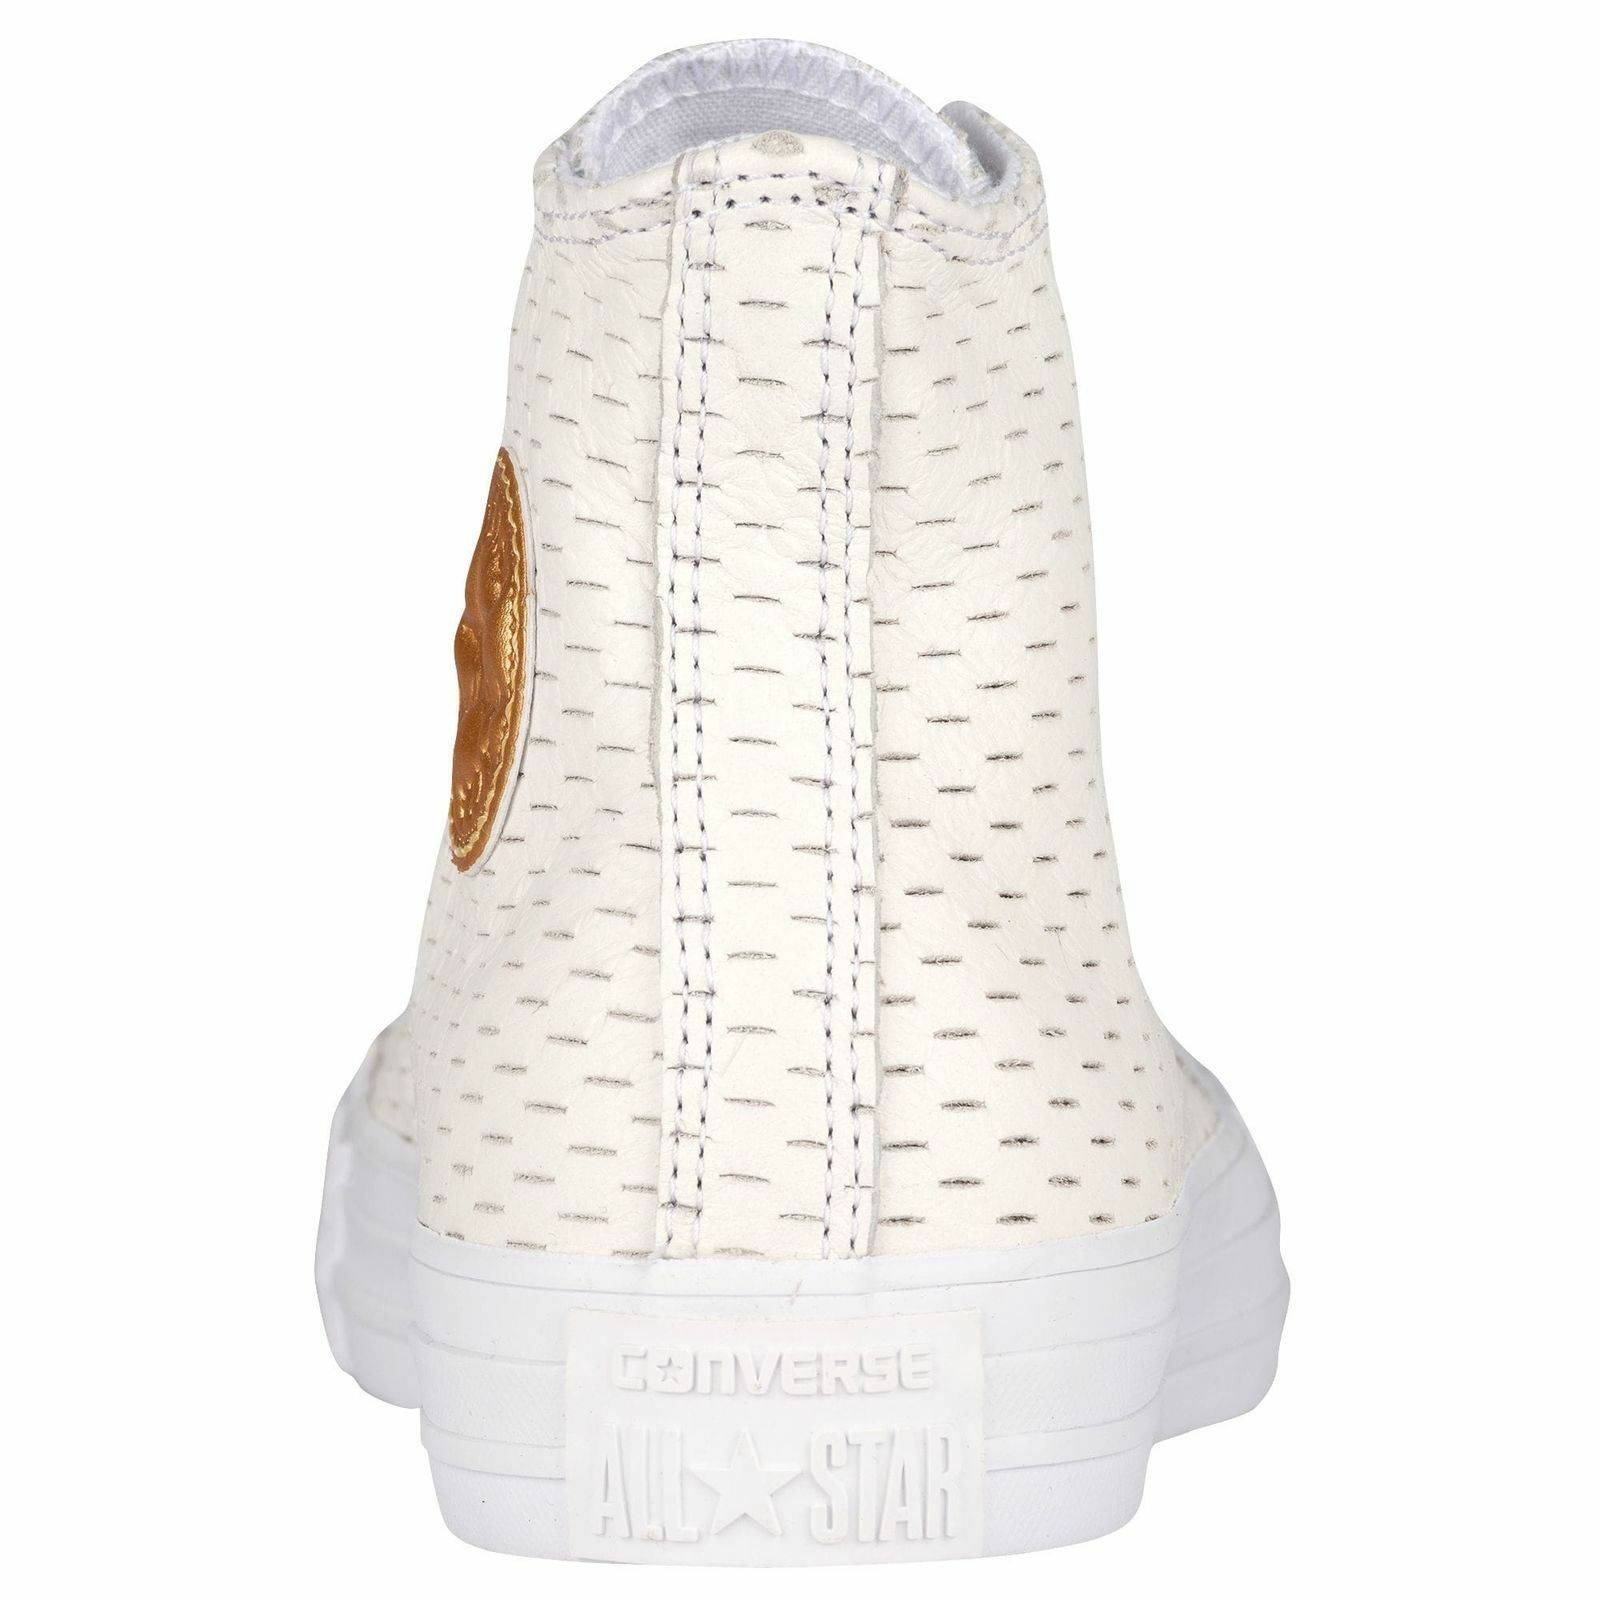 Converse All Star Leather High White Out Pack White/Gold 153115C Mens Shoe image 5